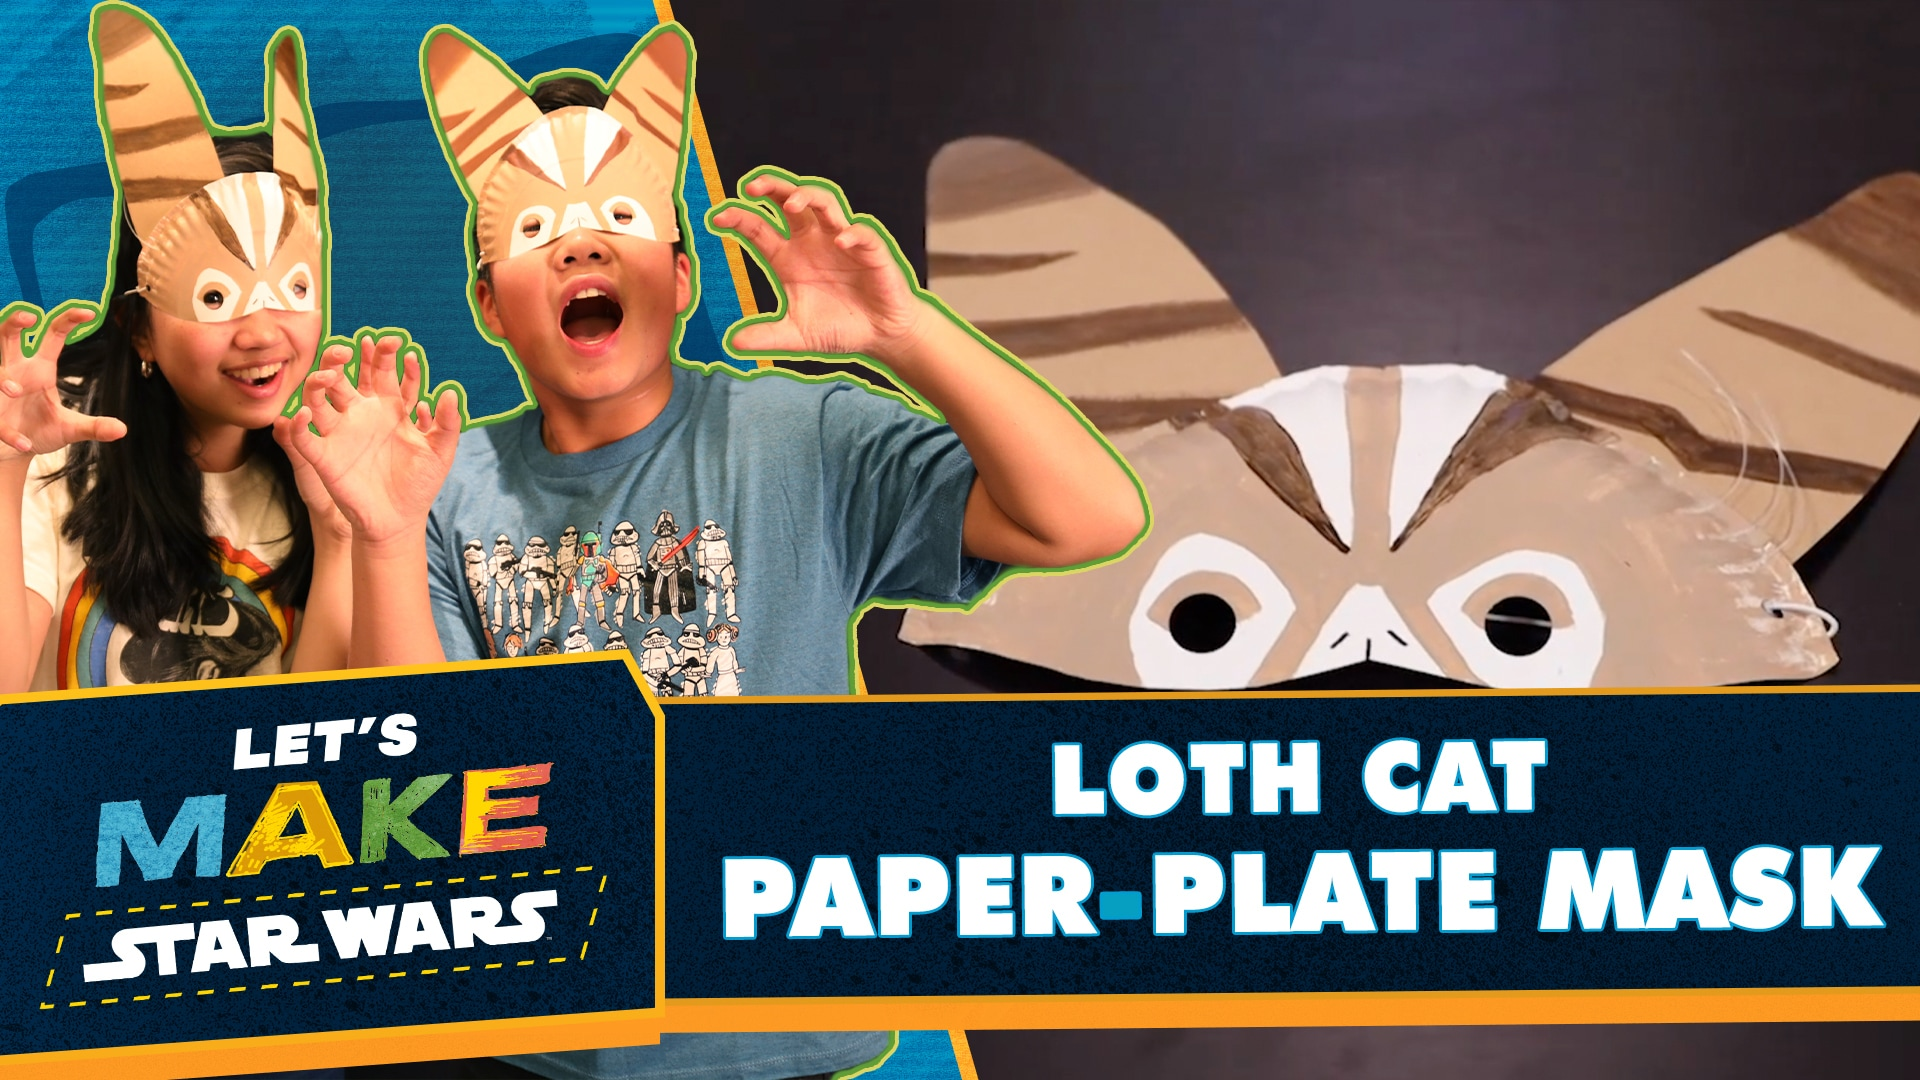 How to Make Paper Plate Masks | Let's Make Star Wars